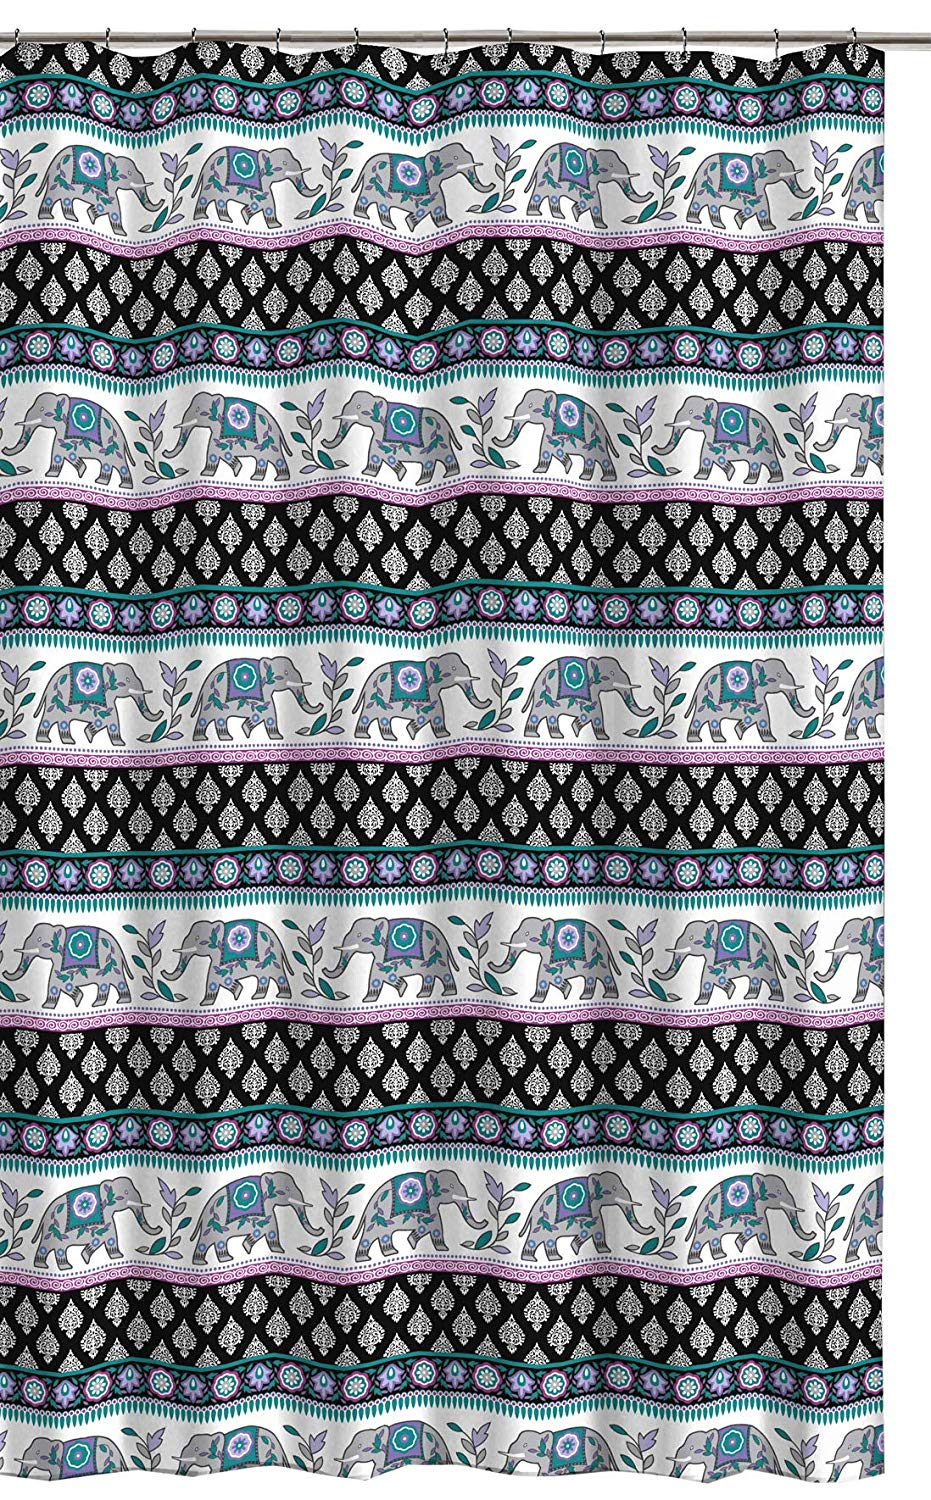 Cheap Colorful Border Designs Find Colorful Border Designs Deals On